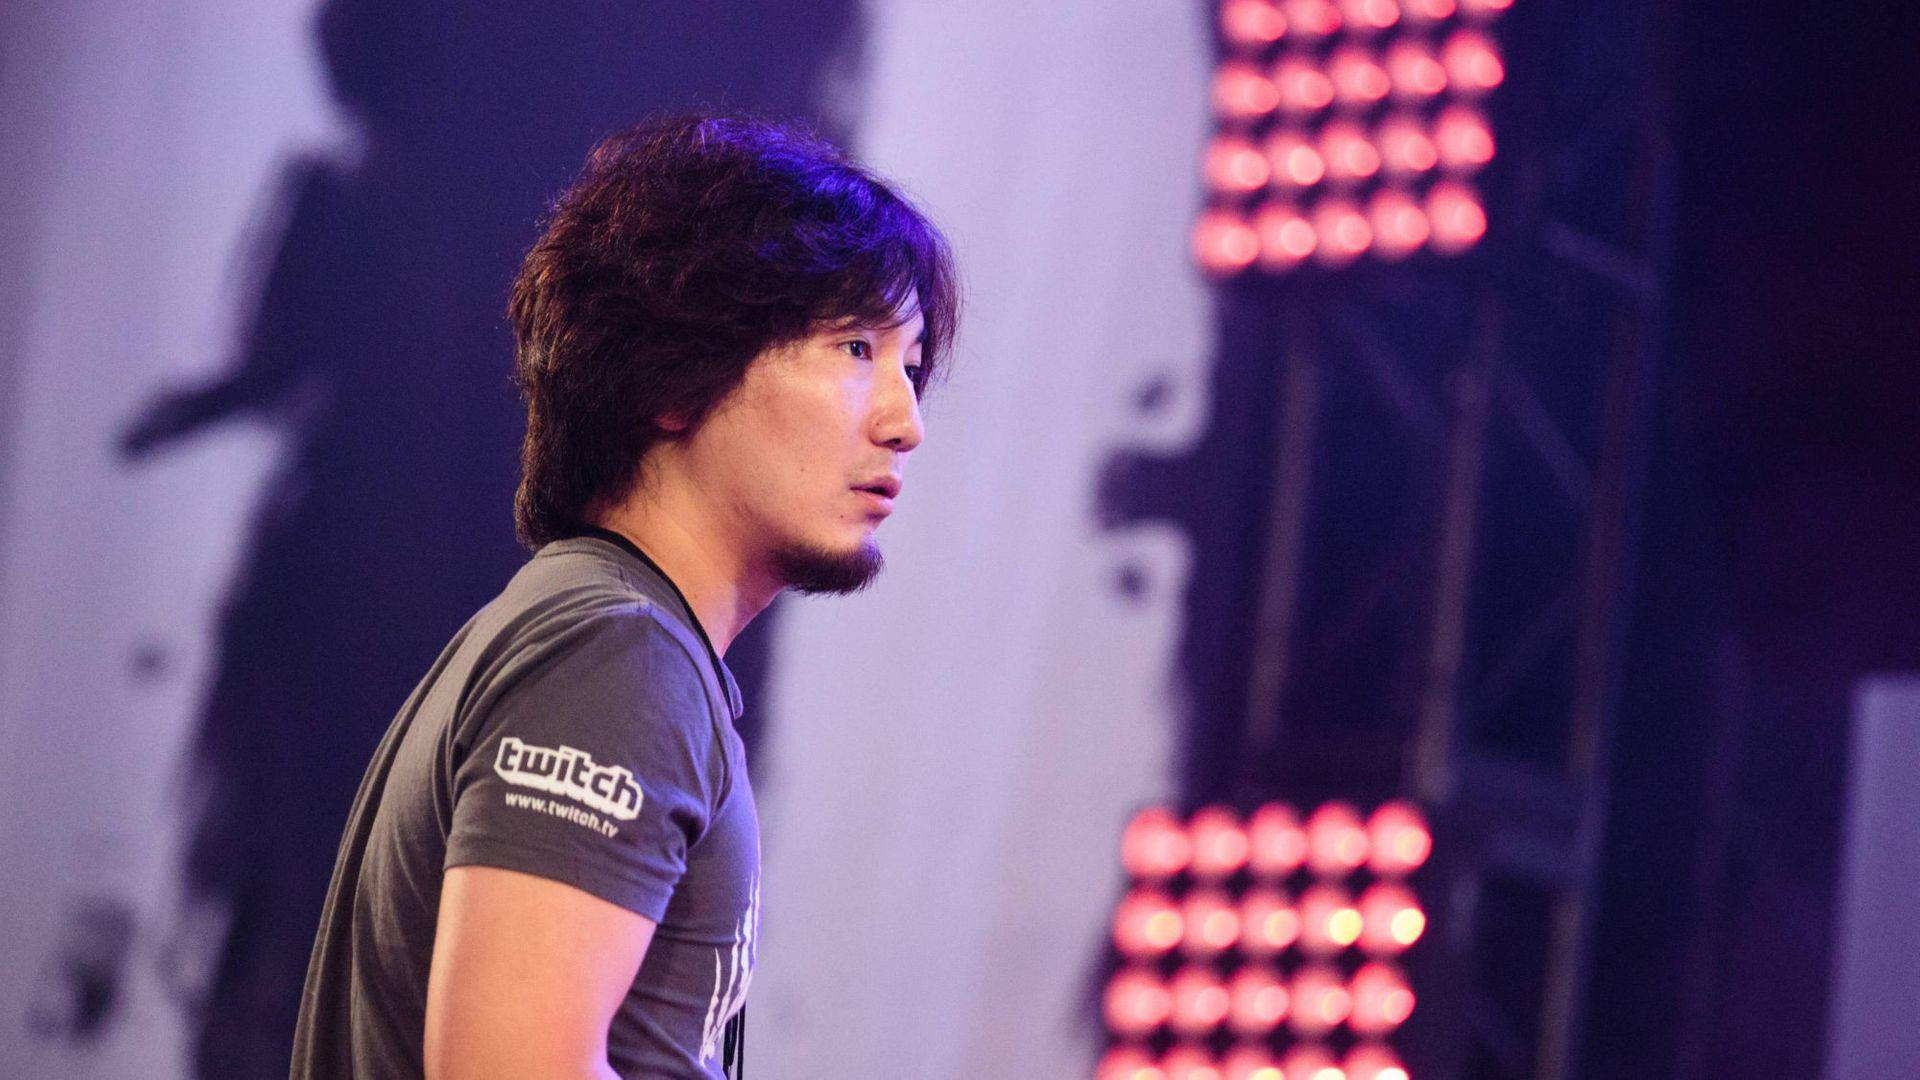 Daigo Umehara Wallpapers Wallpaper Cave